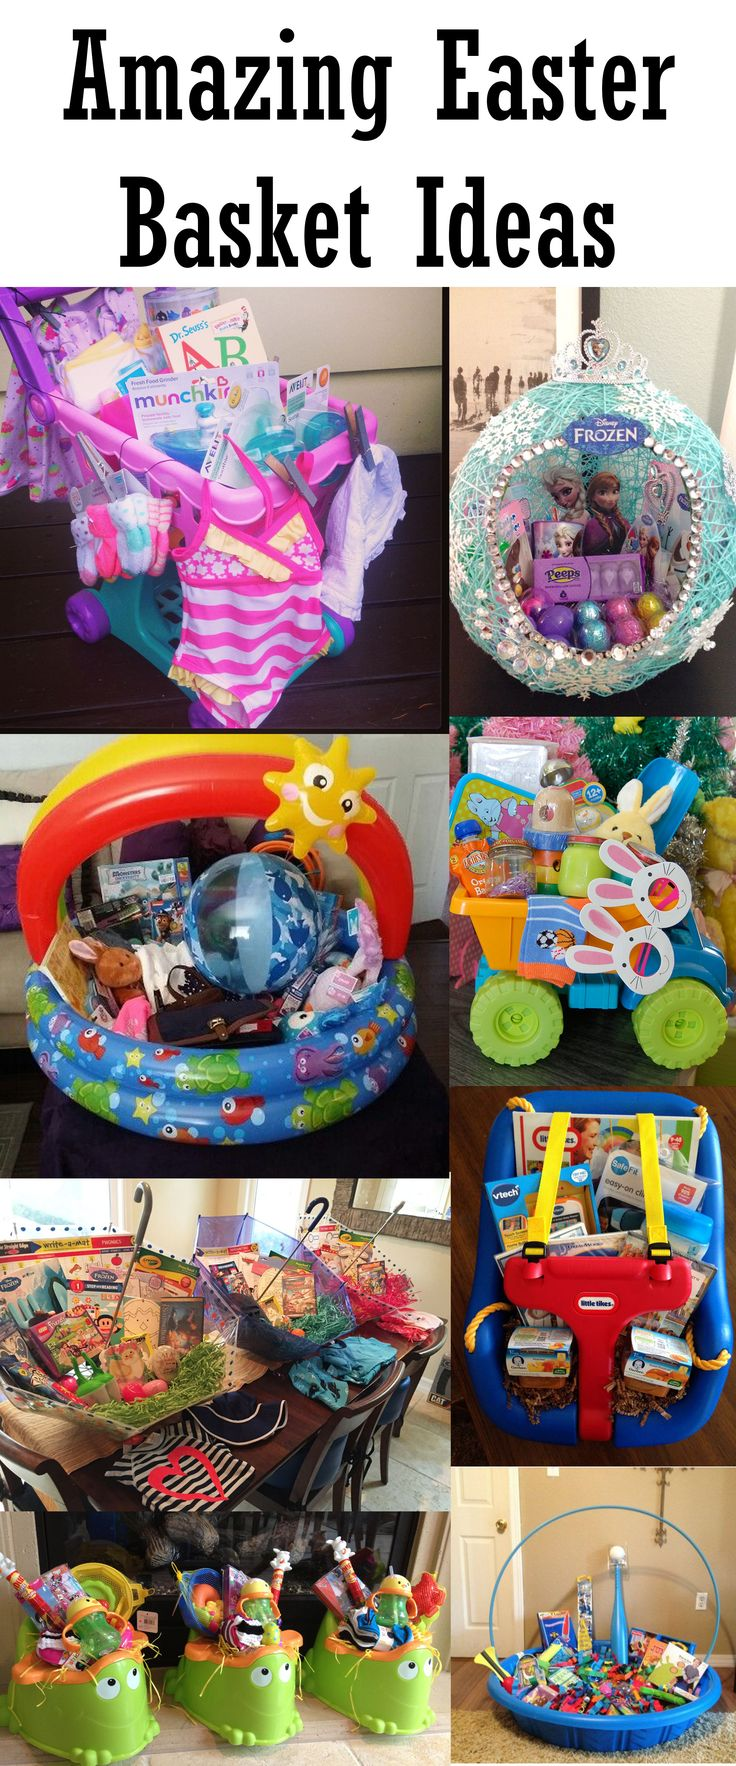 Best 25 easter baskets ideas on pinterest easter easter amazing easter basket ideas 1 baby food for gavin and books for alyssa negle Images